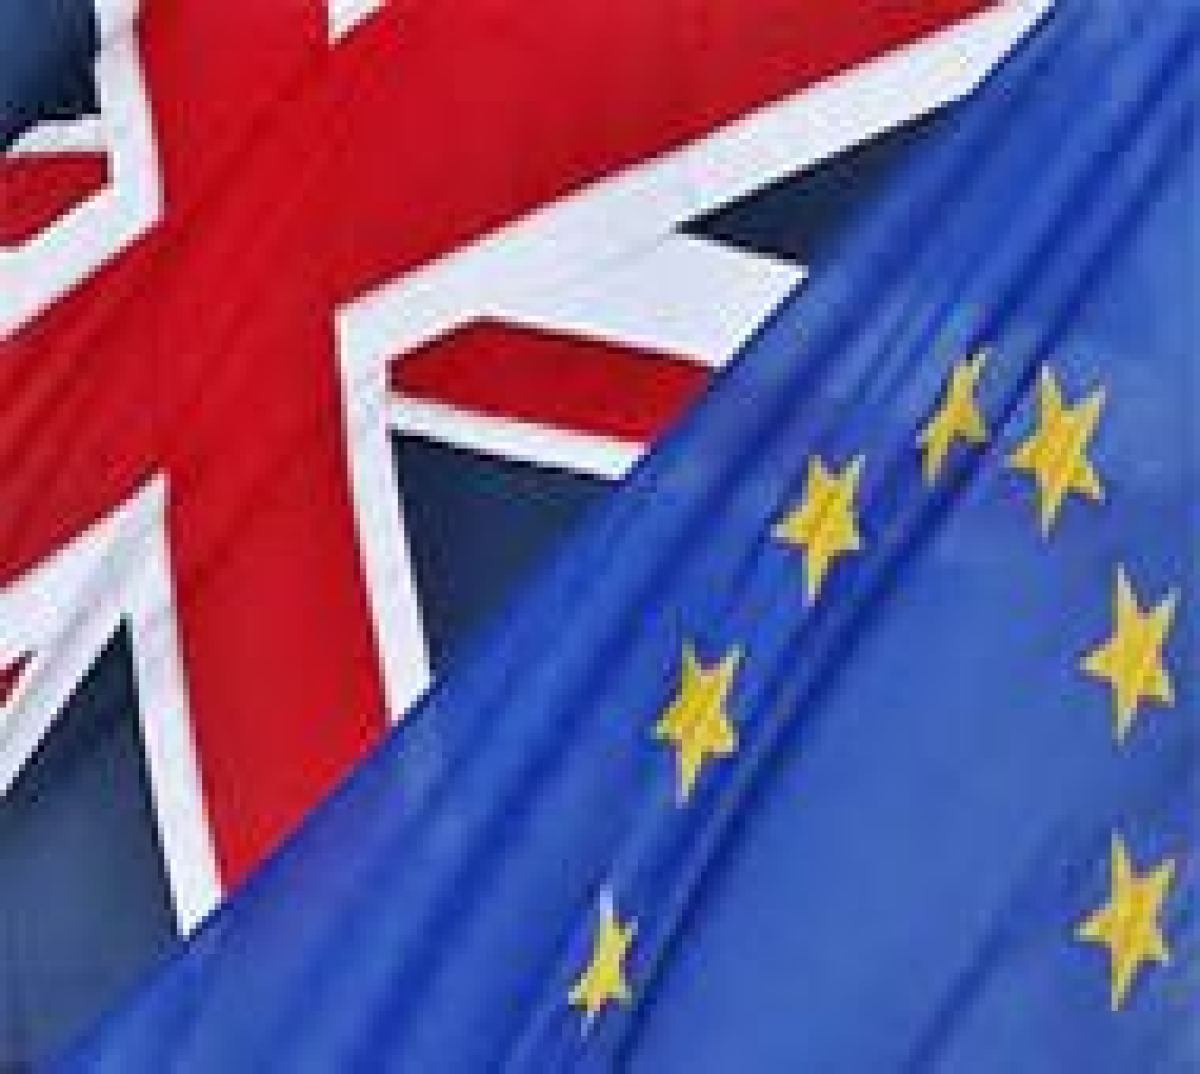 Seeds of Scottish secession in Brexit